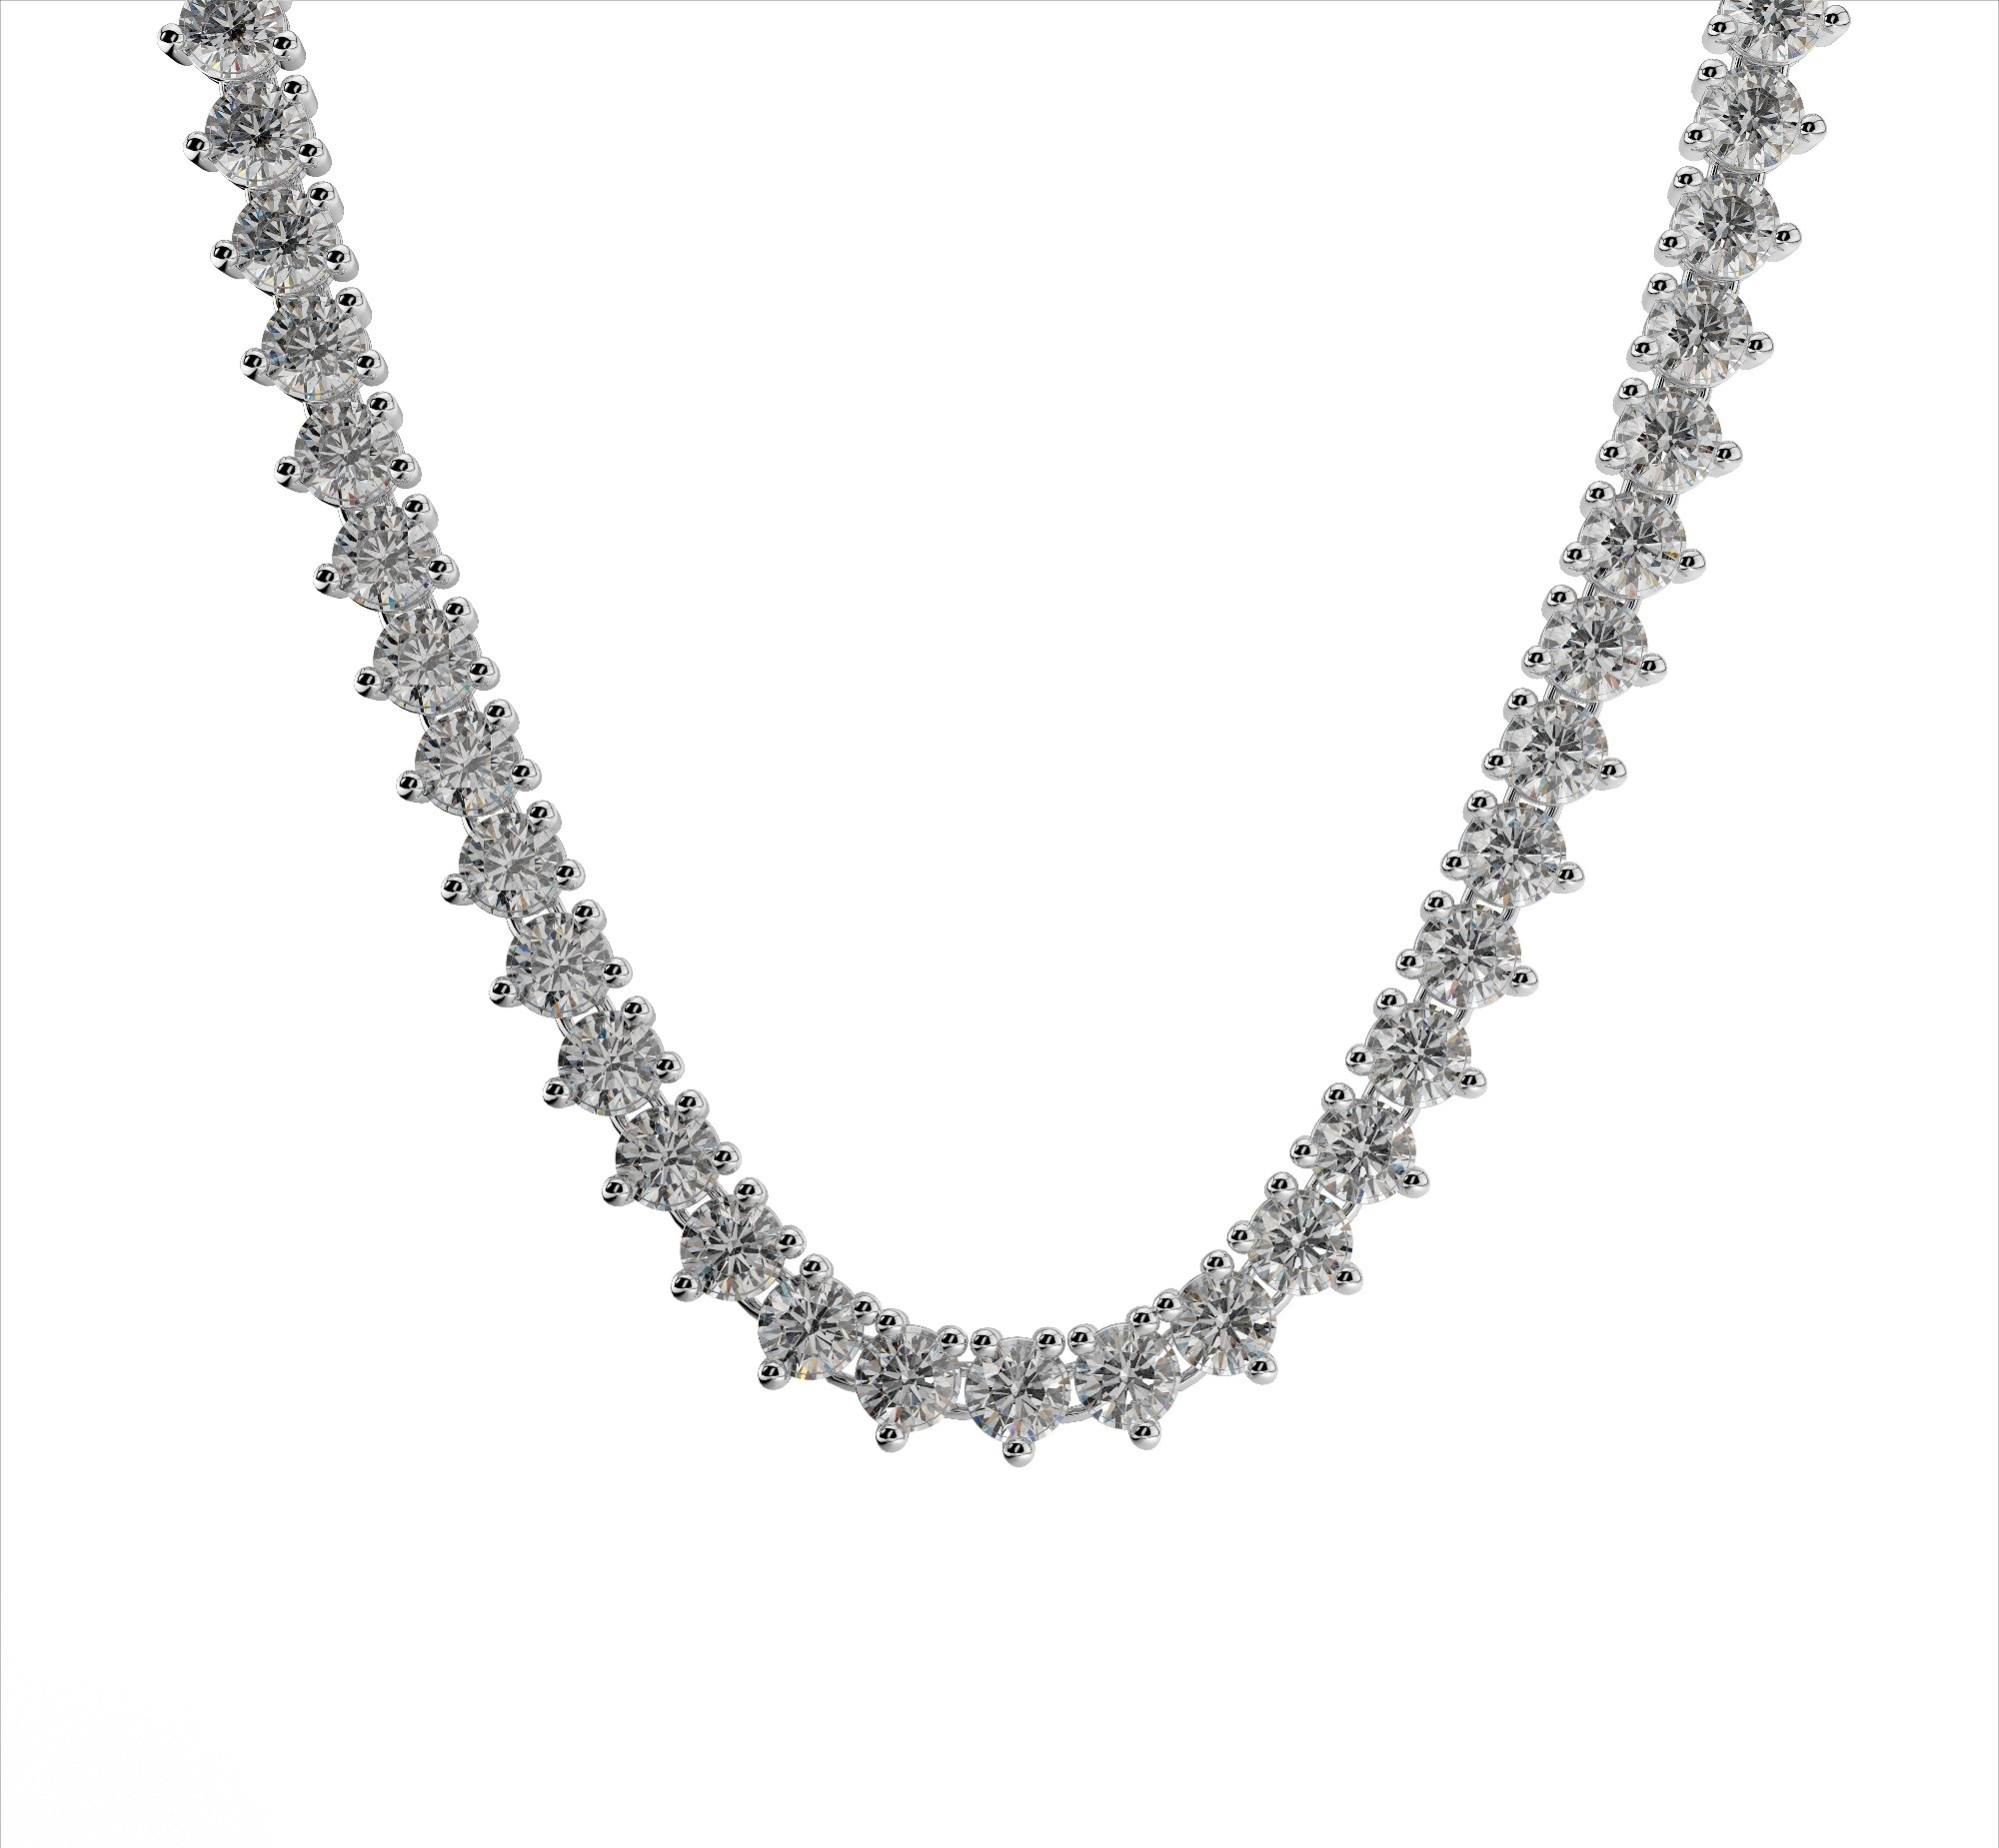 3 Prong Tennis Necklace With Even Diamond Sizes